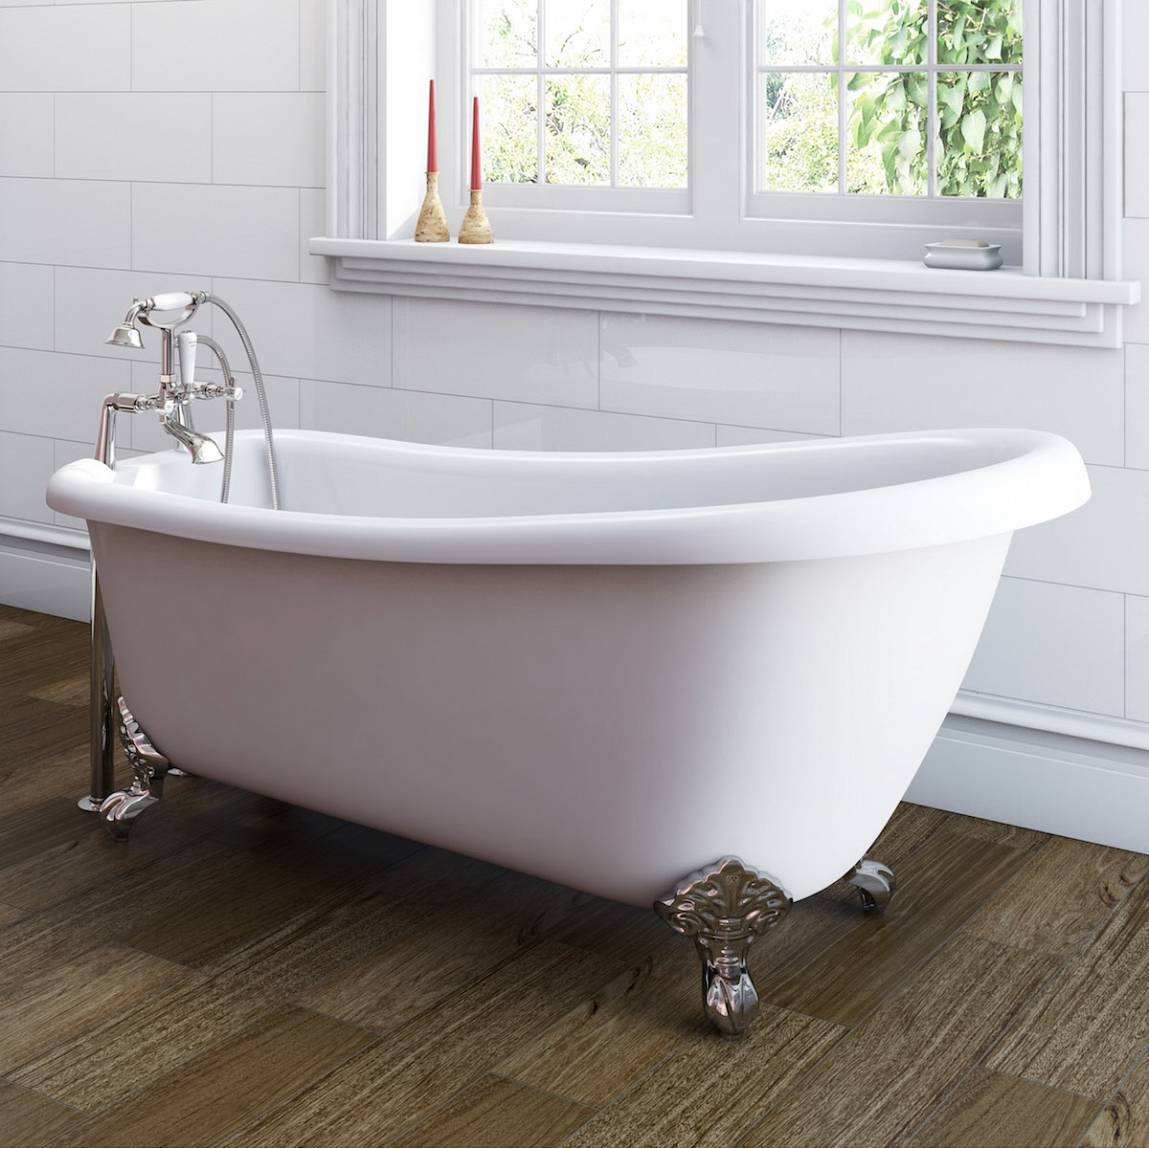 Winchester roll top bath